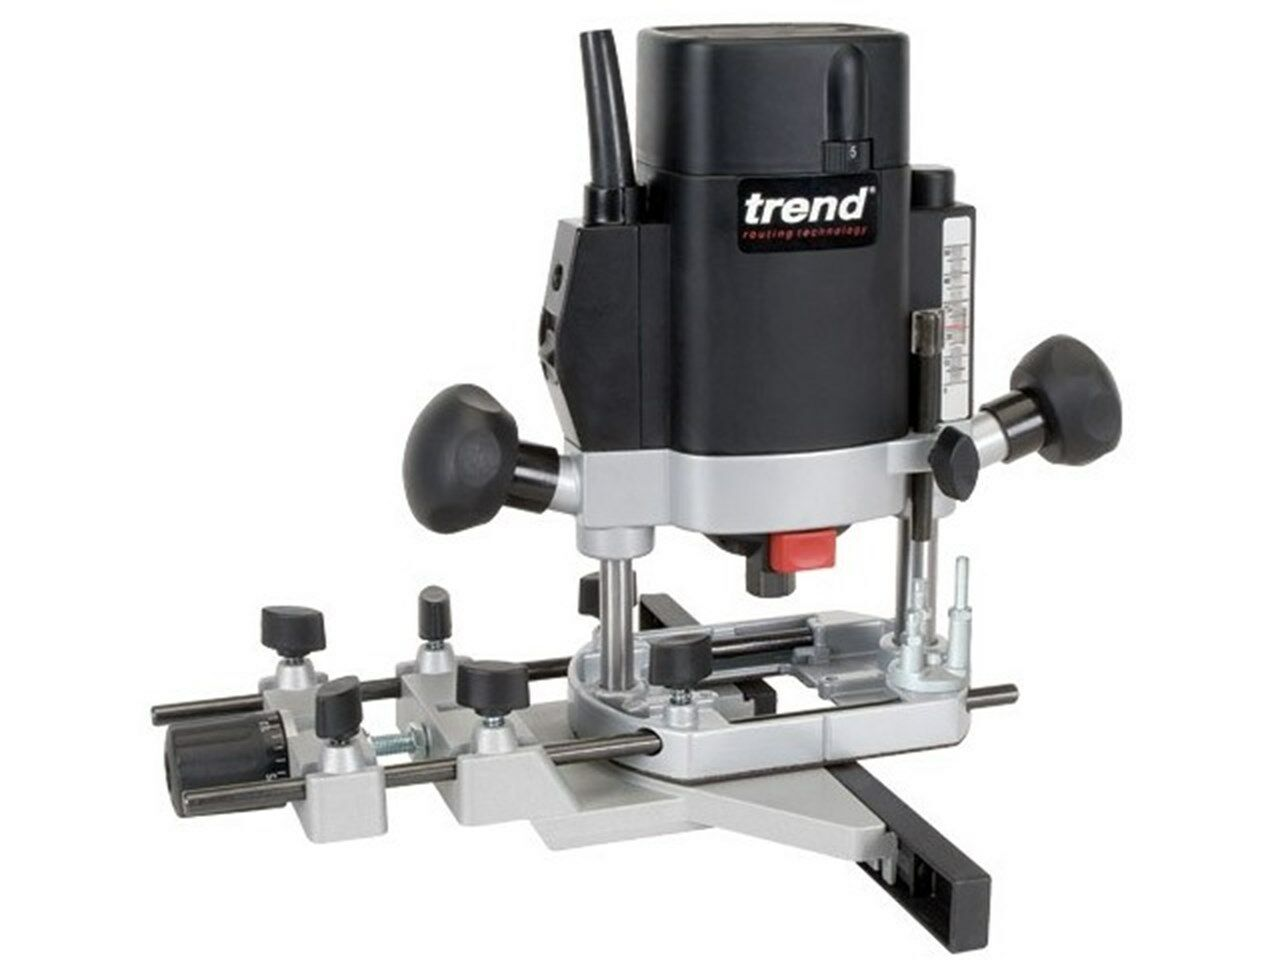 Trend T5ELB 1000w 1 4  Variable Speed Router 115v